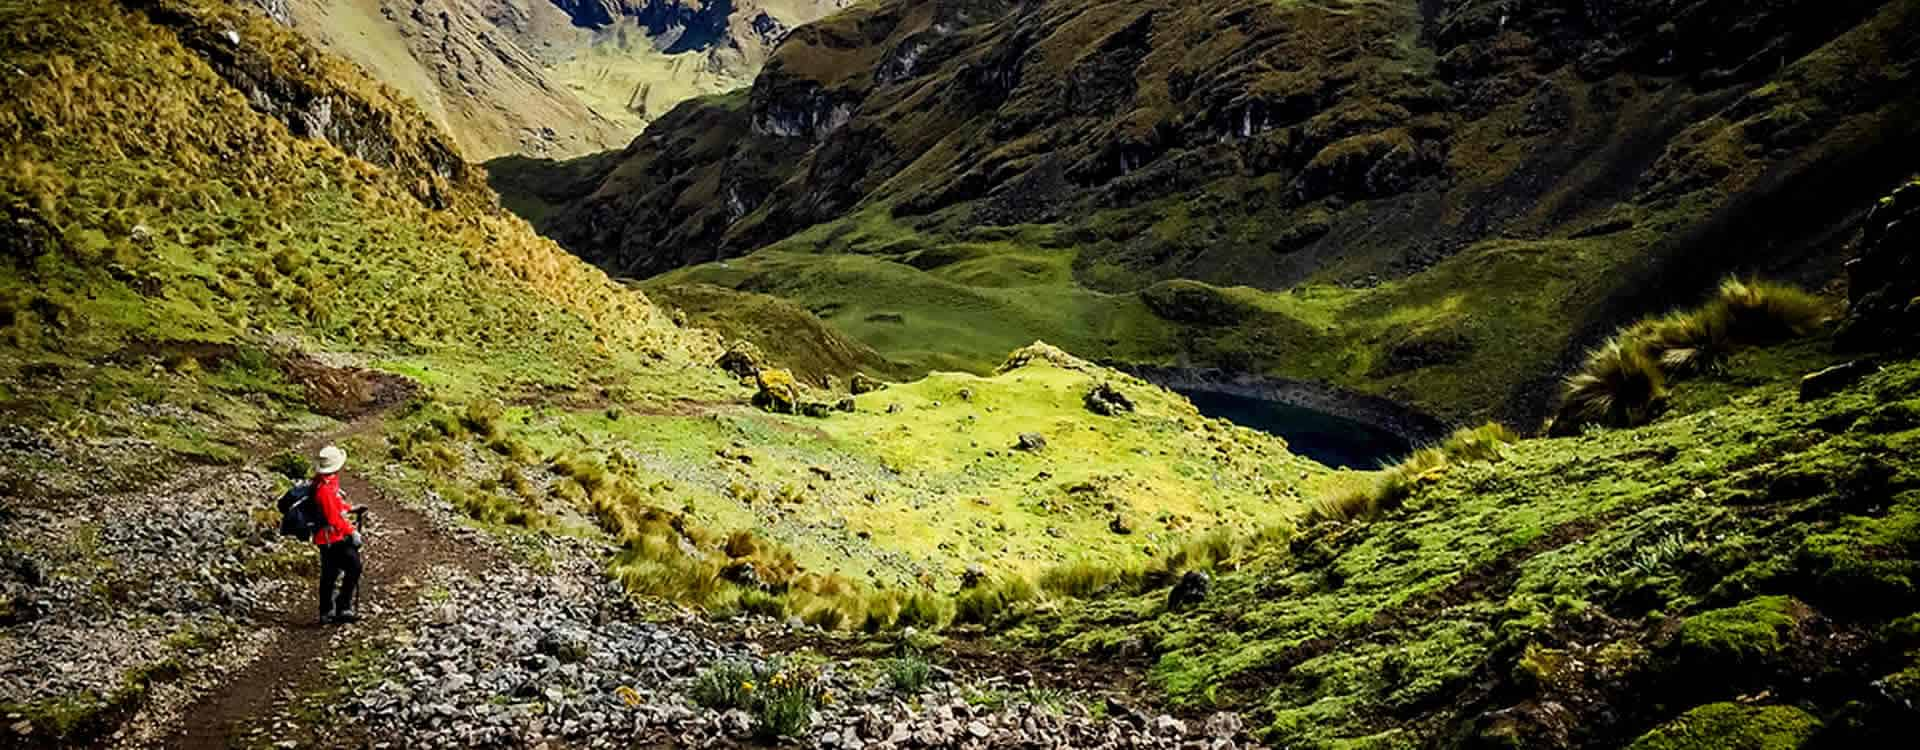 route to lares valley strong walks cusco